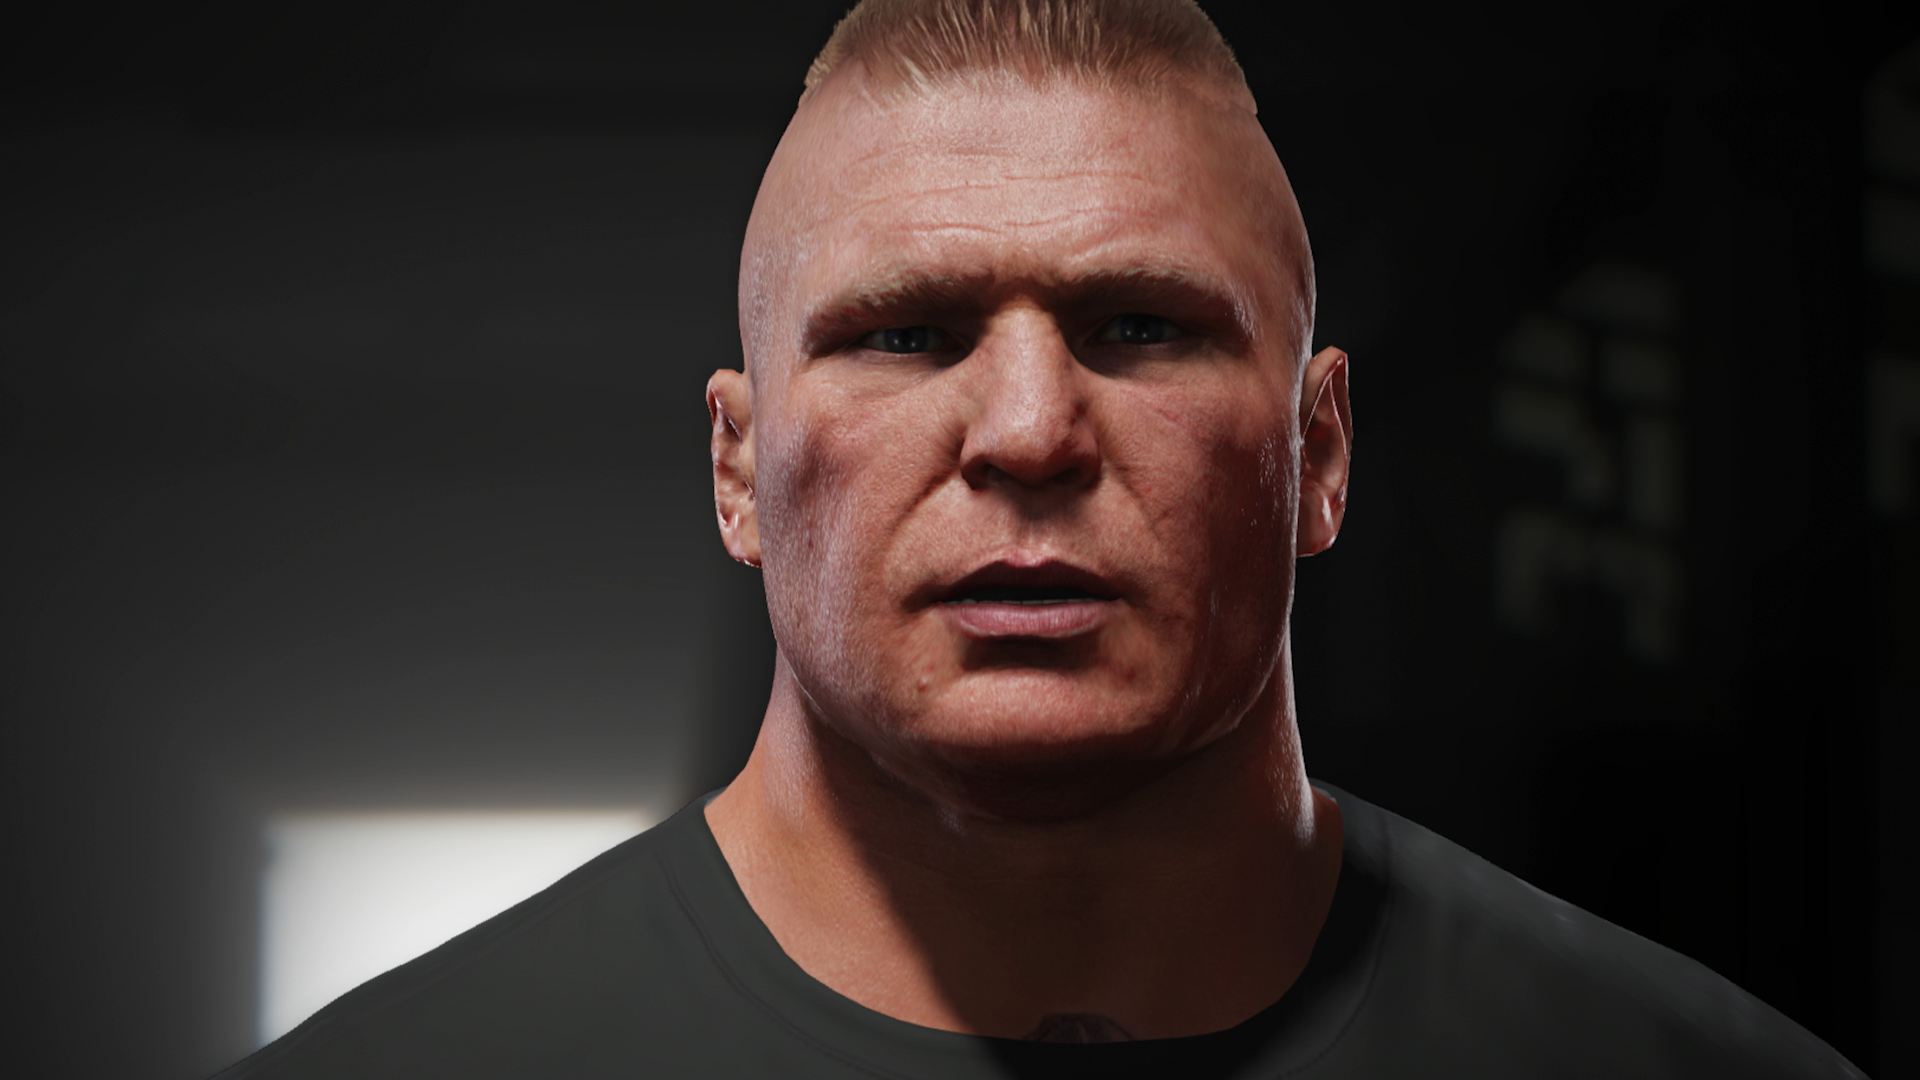 Brock Lesnar added to UFC 4 in latest update | Shacknews